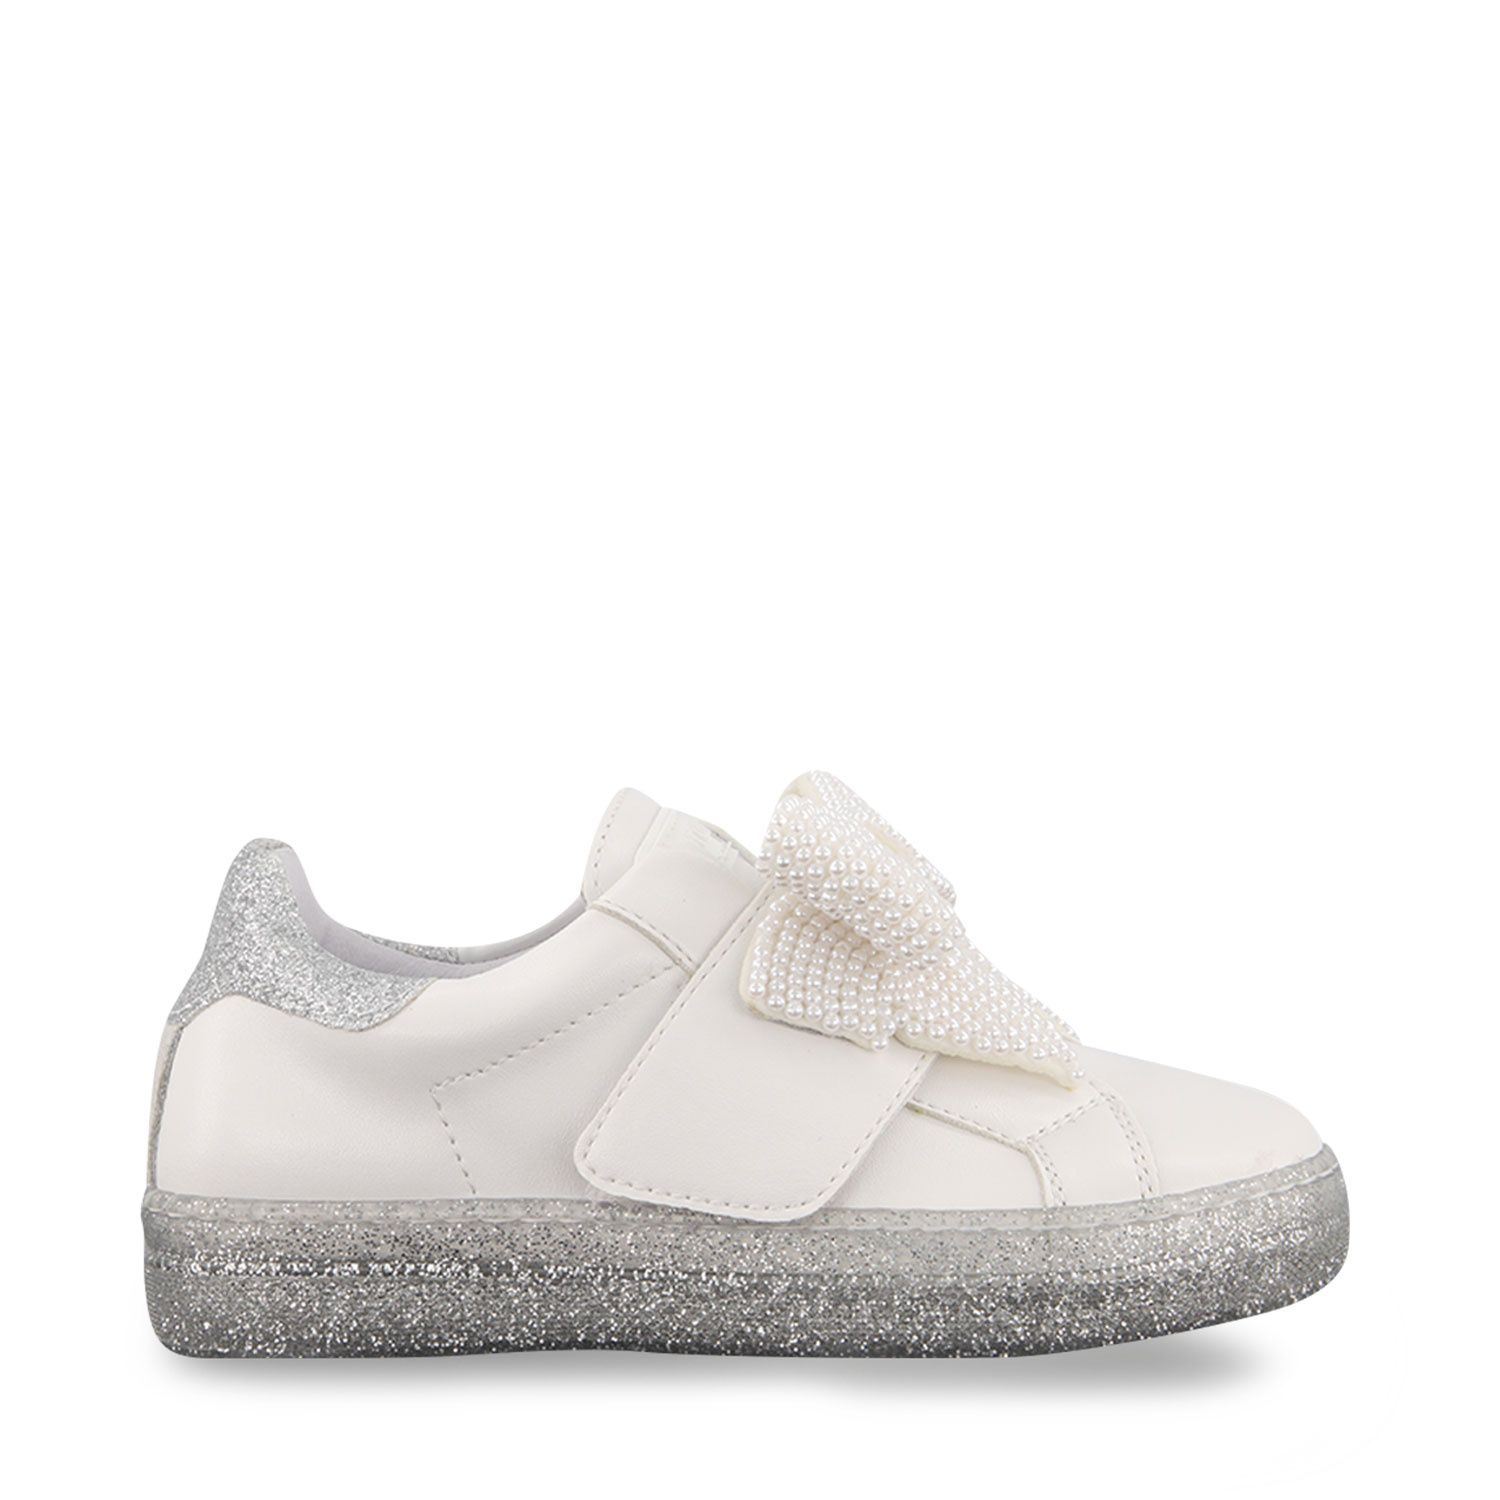 Picture of MonnaLisa 8C7009 kids sneakers white